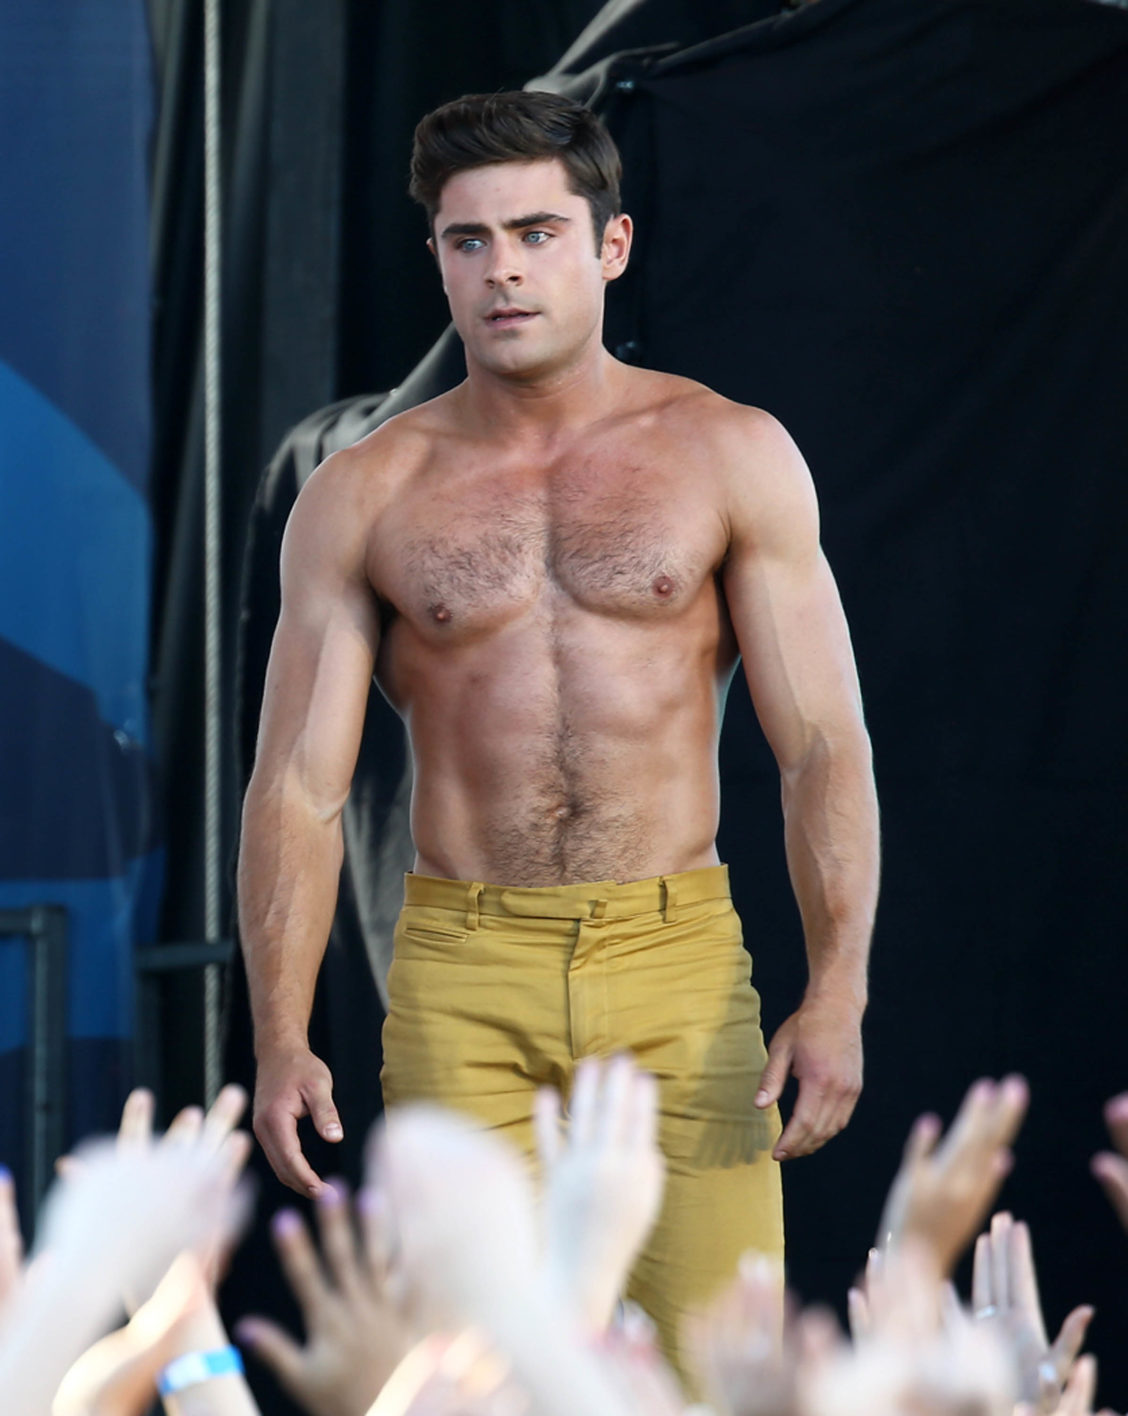 Zac Efron Torse Nu : efron, torse, Efron, Shirtless:, Times, Hunky, Actor, Almost, Shared, Goods, Hornet,, Social, Network